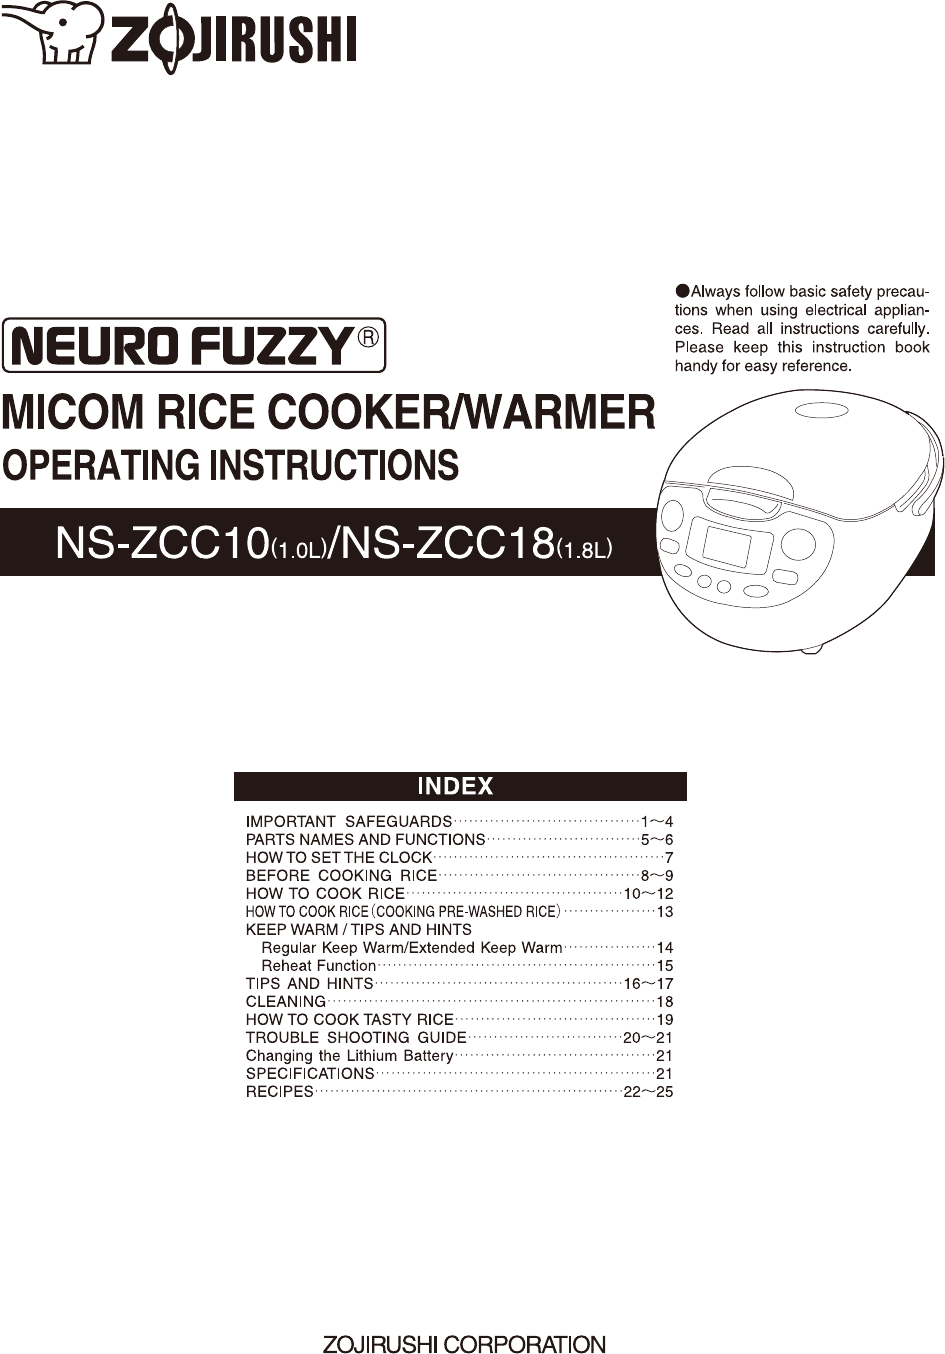 Zojirushi neuro fuzzy ns-zcc18 manuals.